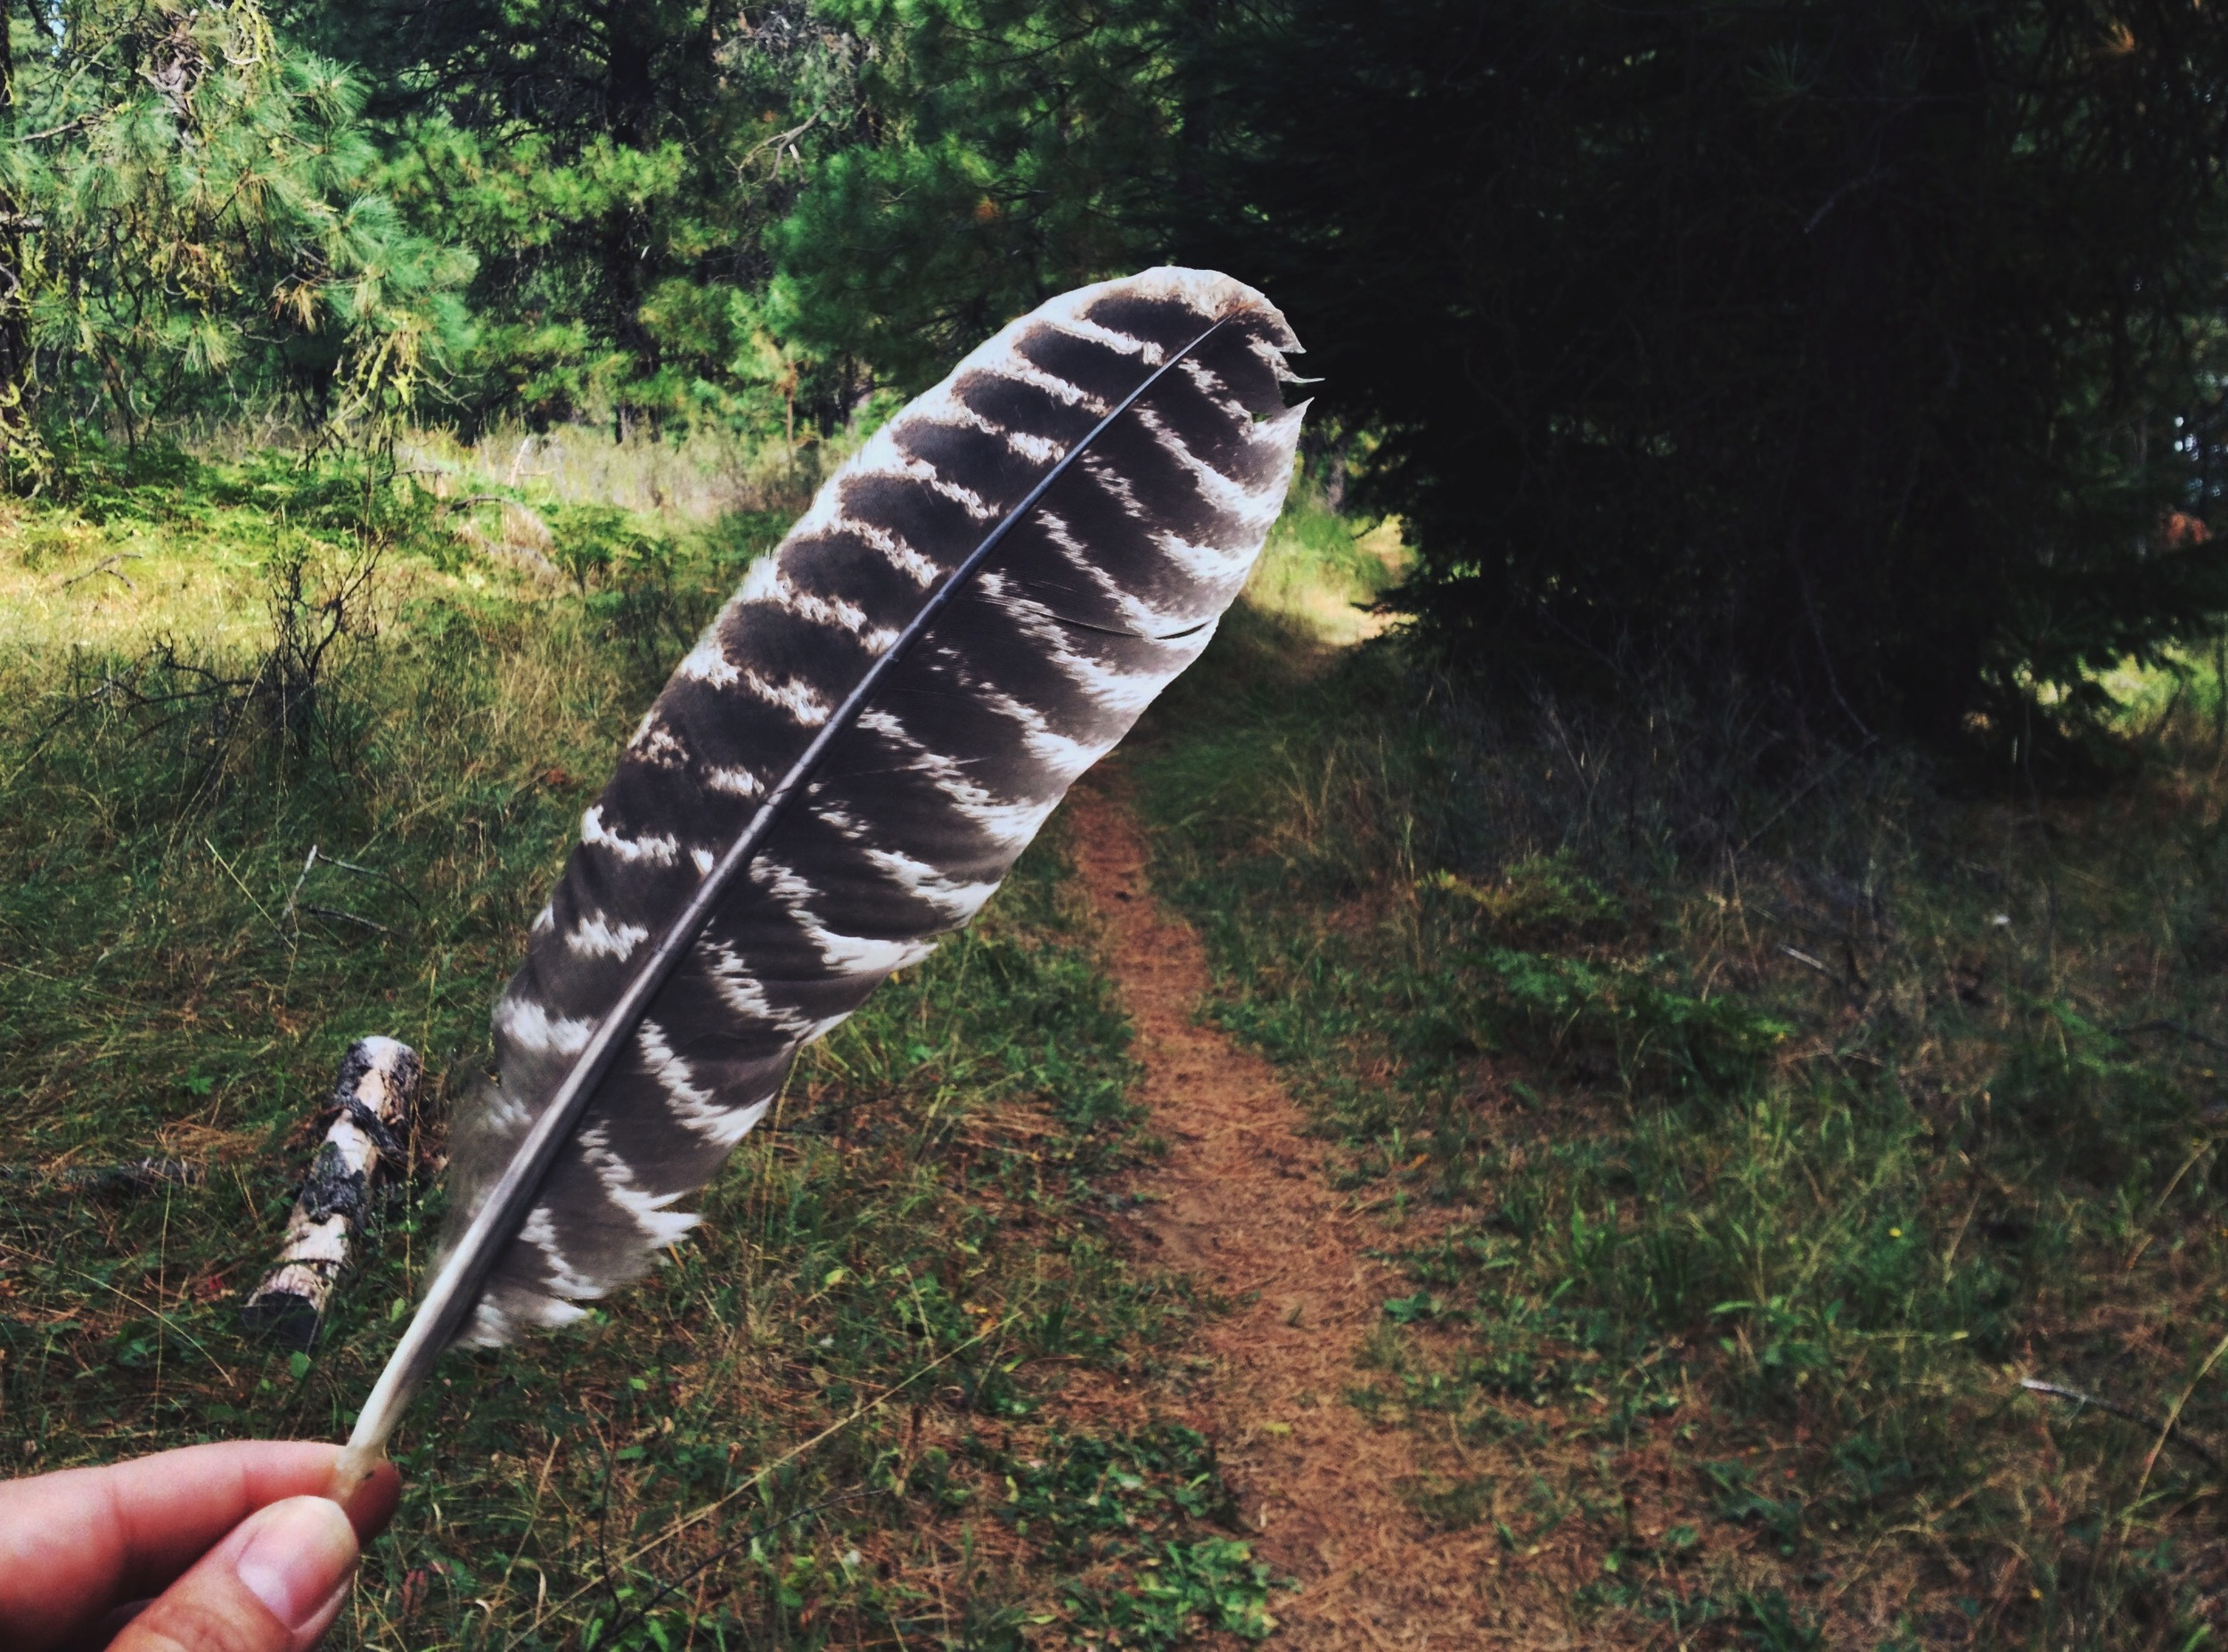 I just assume everything is a red-tailed hawk feather now. Right or wrong. It makes life simpler.